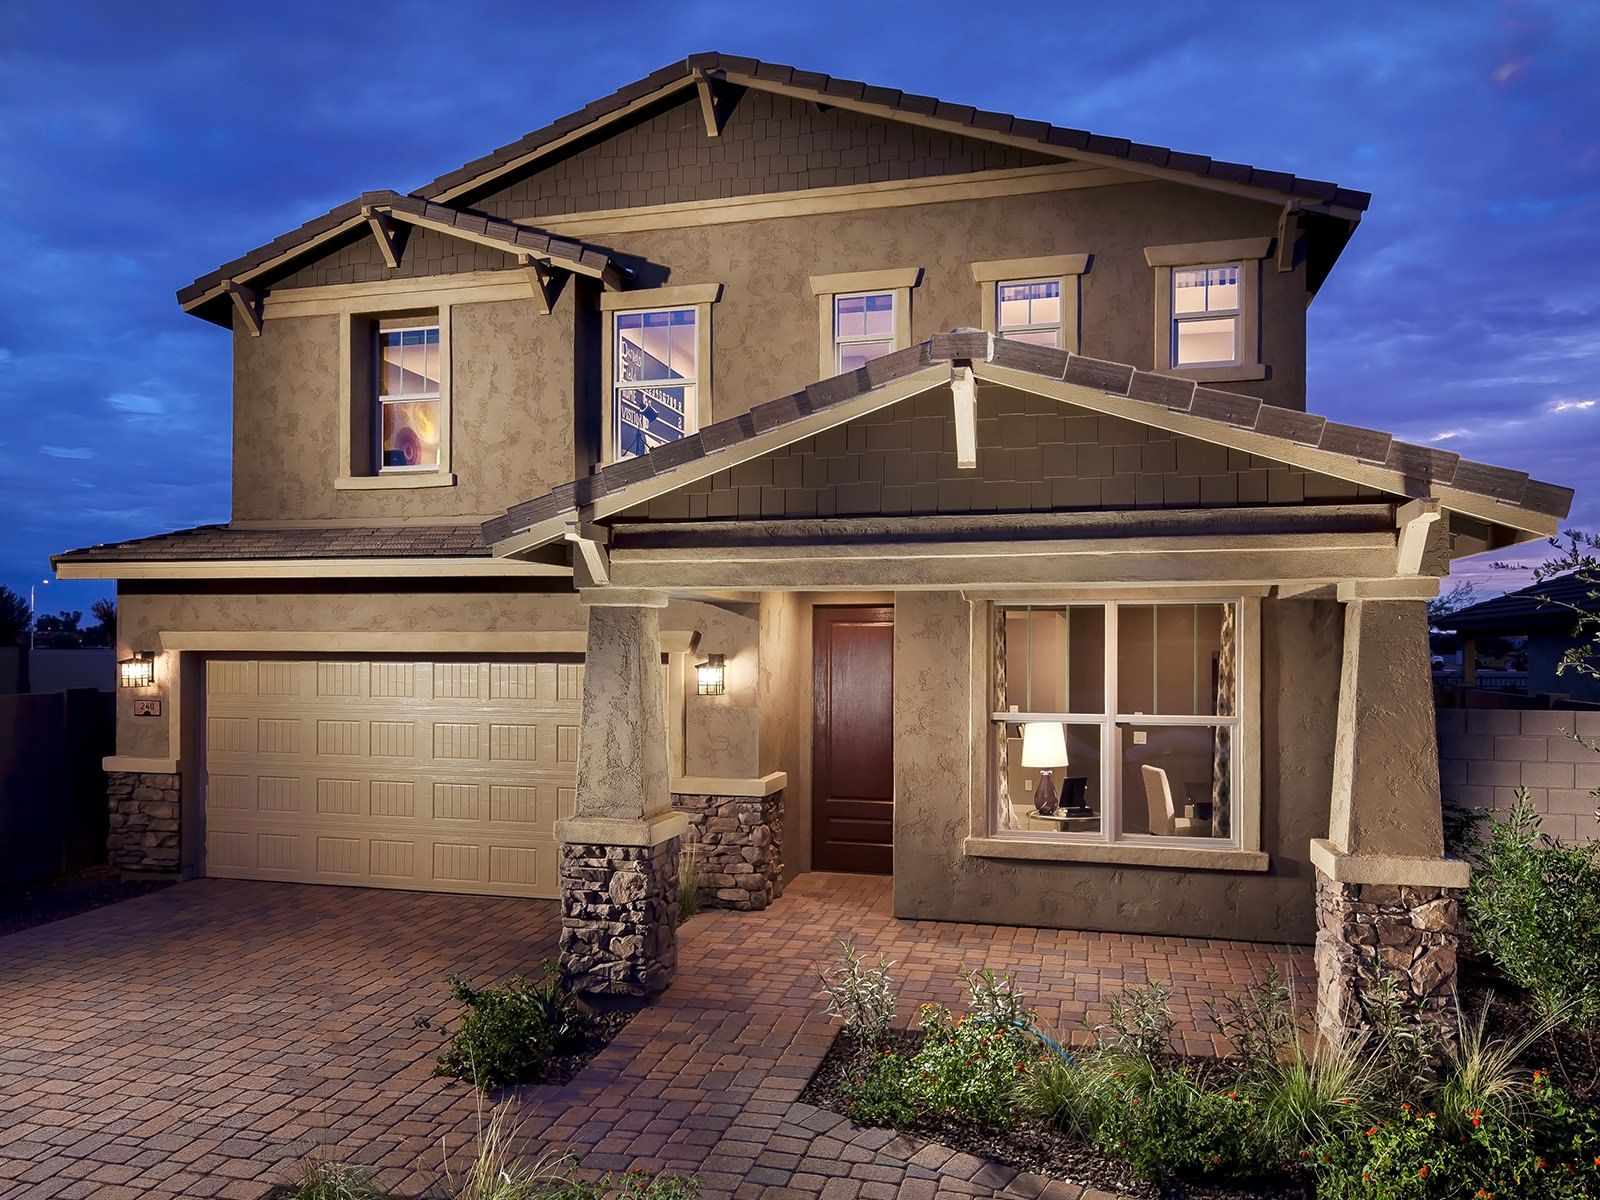 new homes in phoenix arizona home builder shea homes. Black Bedroom Furniture Sets. Home Design Ideas